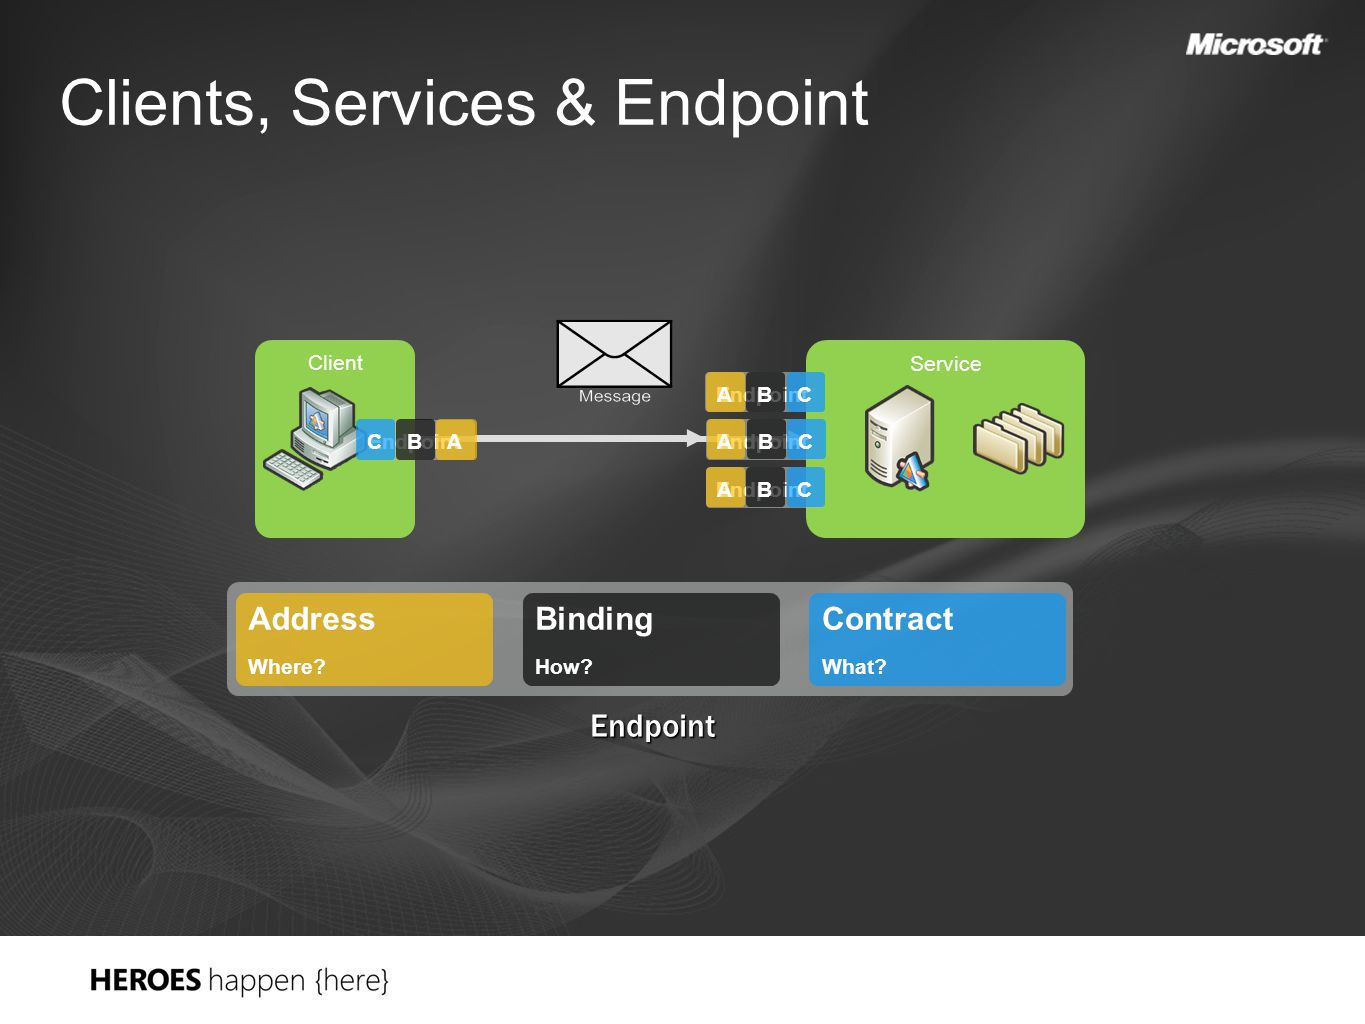 Clients, Services & Endpoint Client Service Endpoint CBA CBA A BC CBA Address Where.